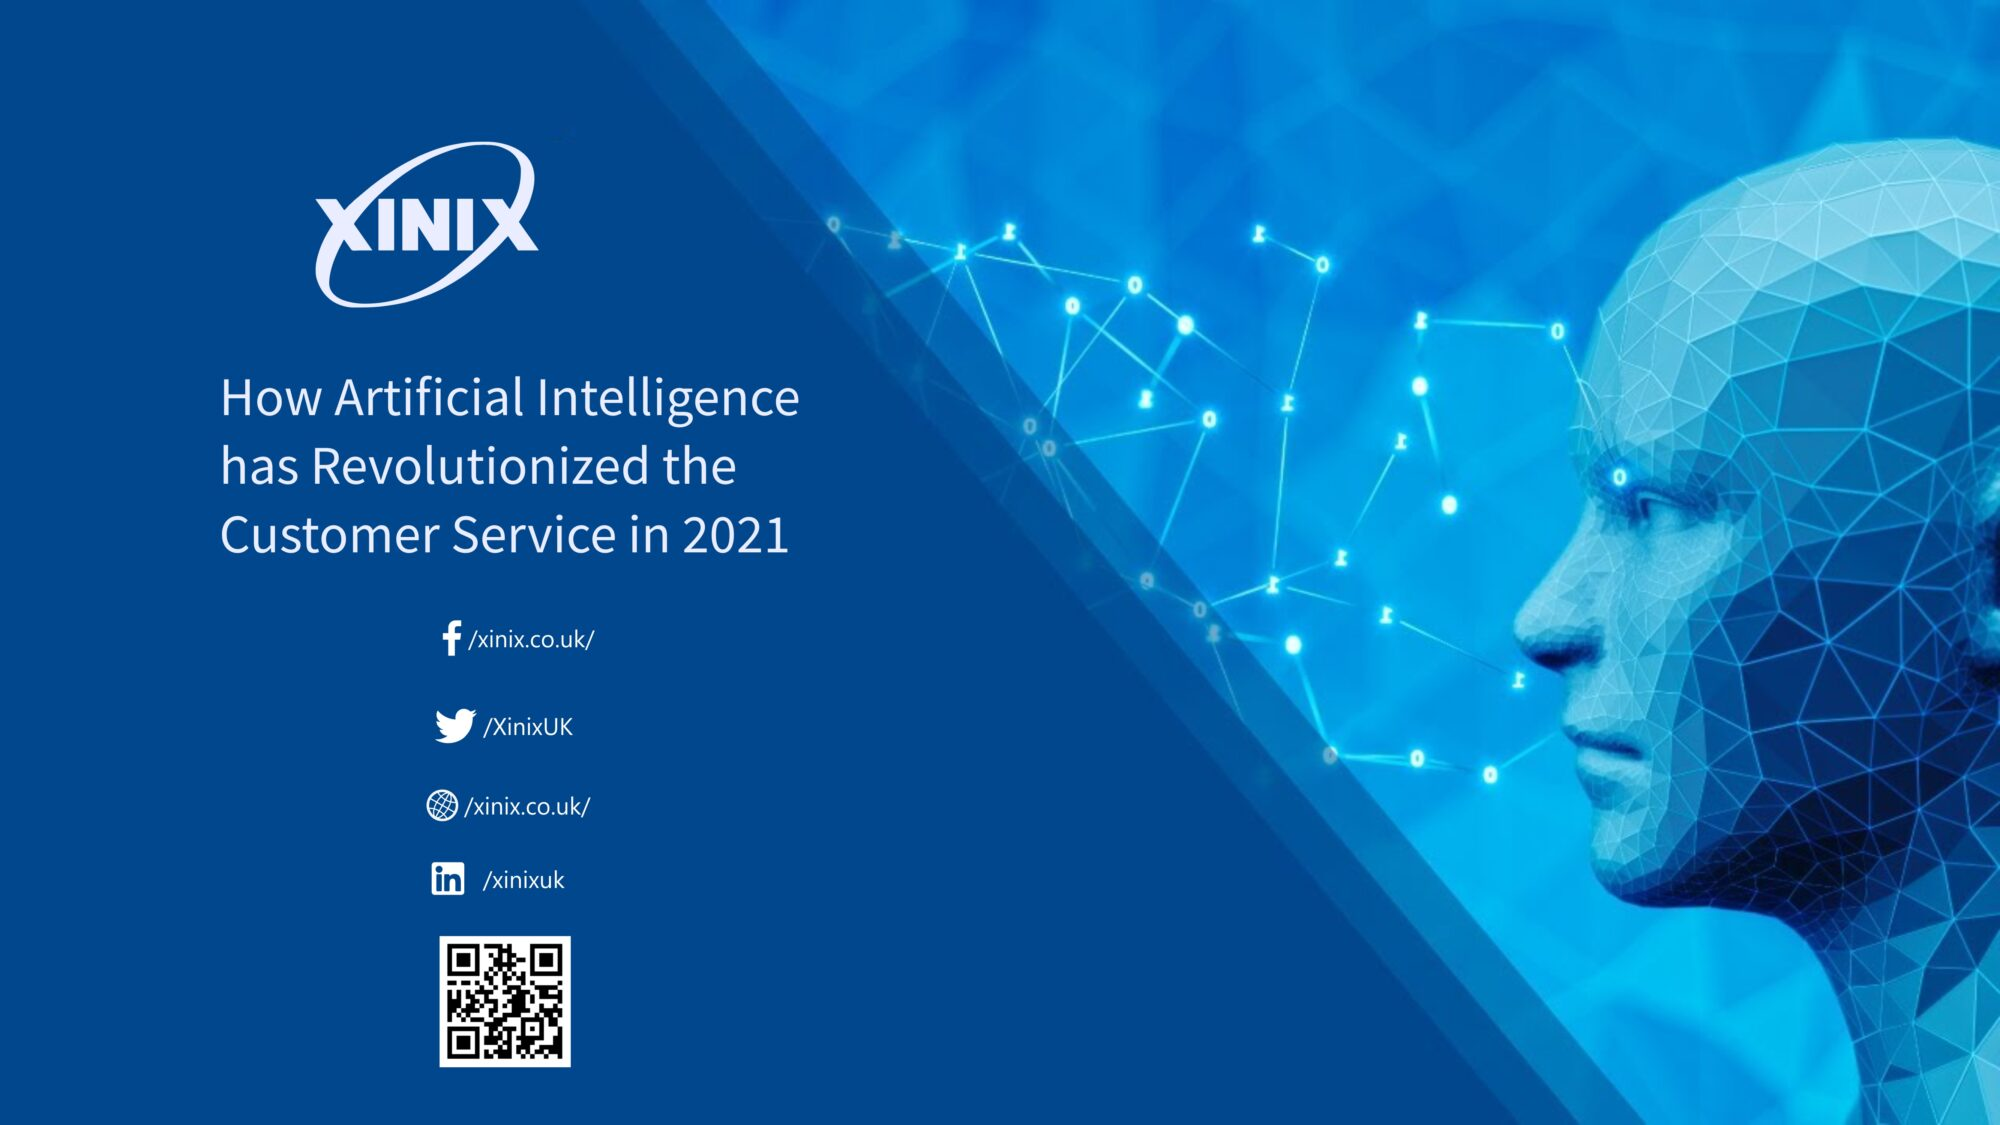 How Artificial Intelligence has revolutionized the Customer Service in 2021